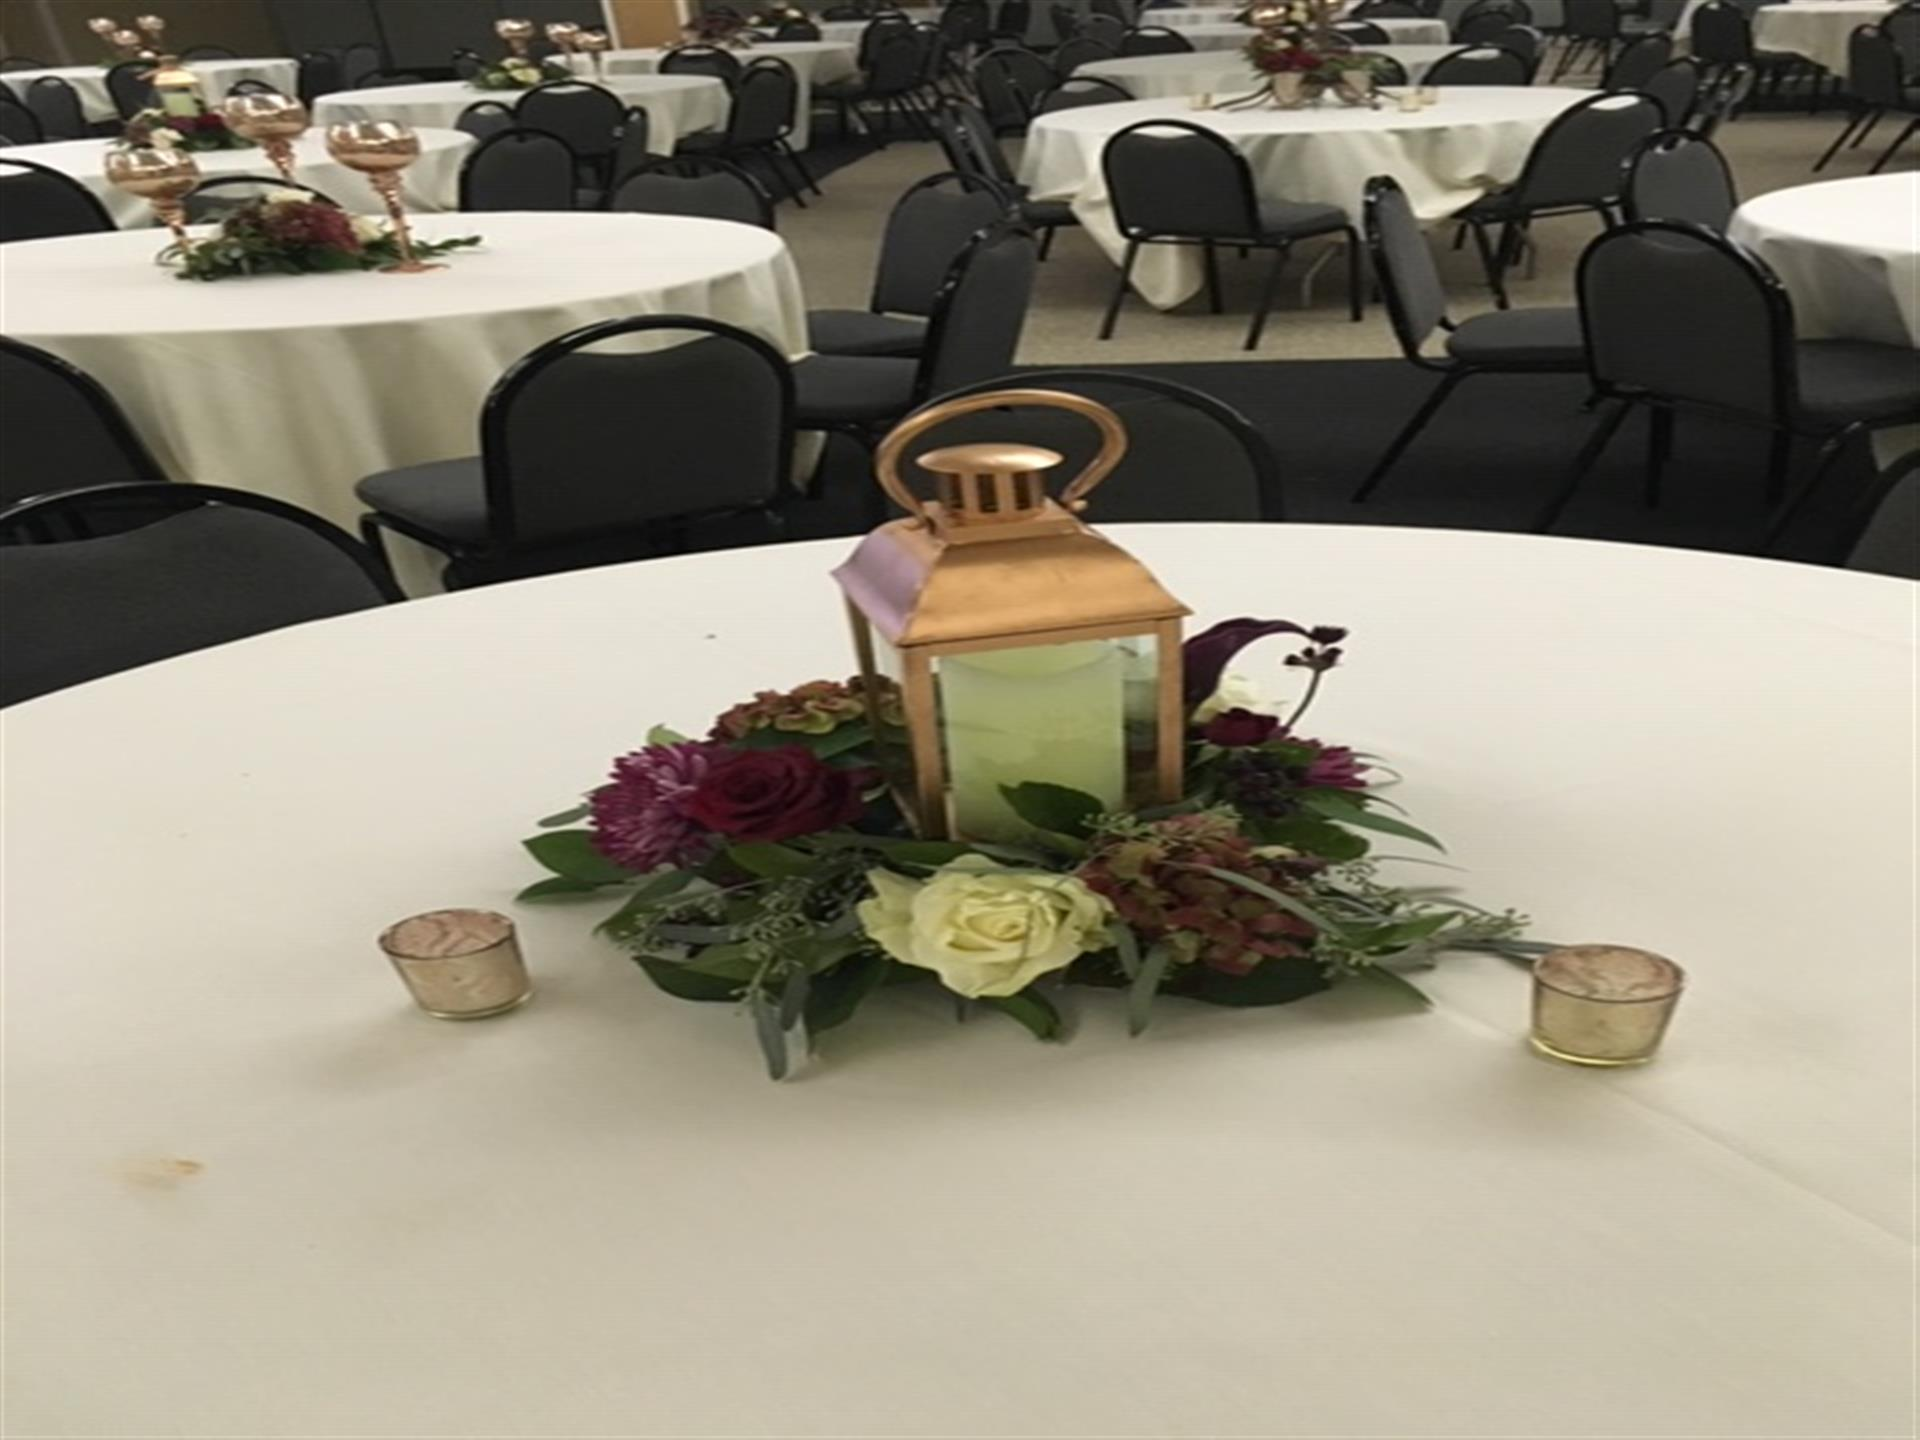 Round table covered in a tablecloth with flower centerpiece  inside Mesenberg Hall